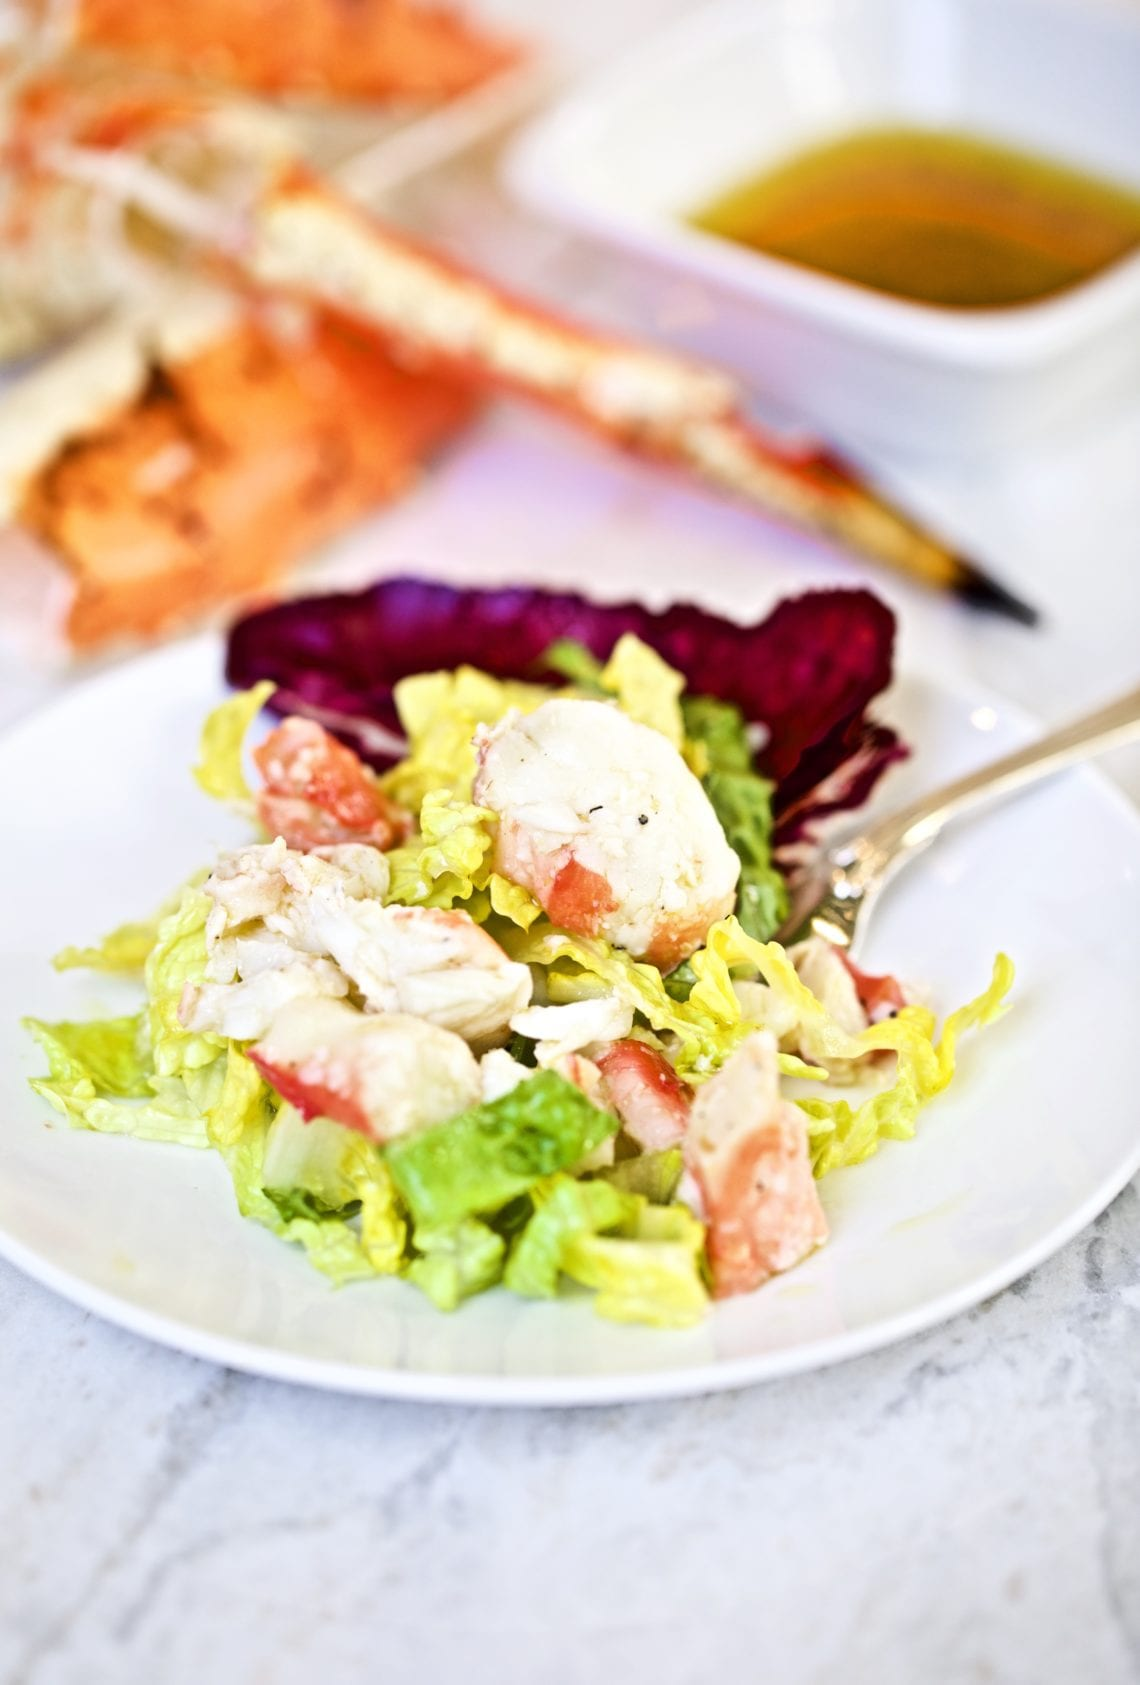 king crab on a plate with lettuce and cup of salad dressing